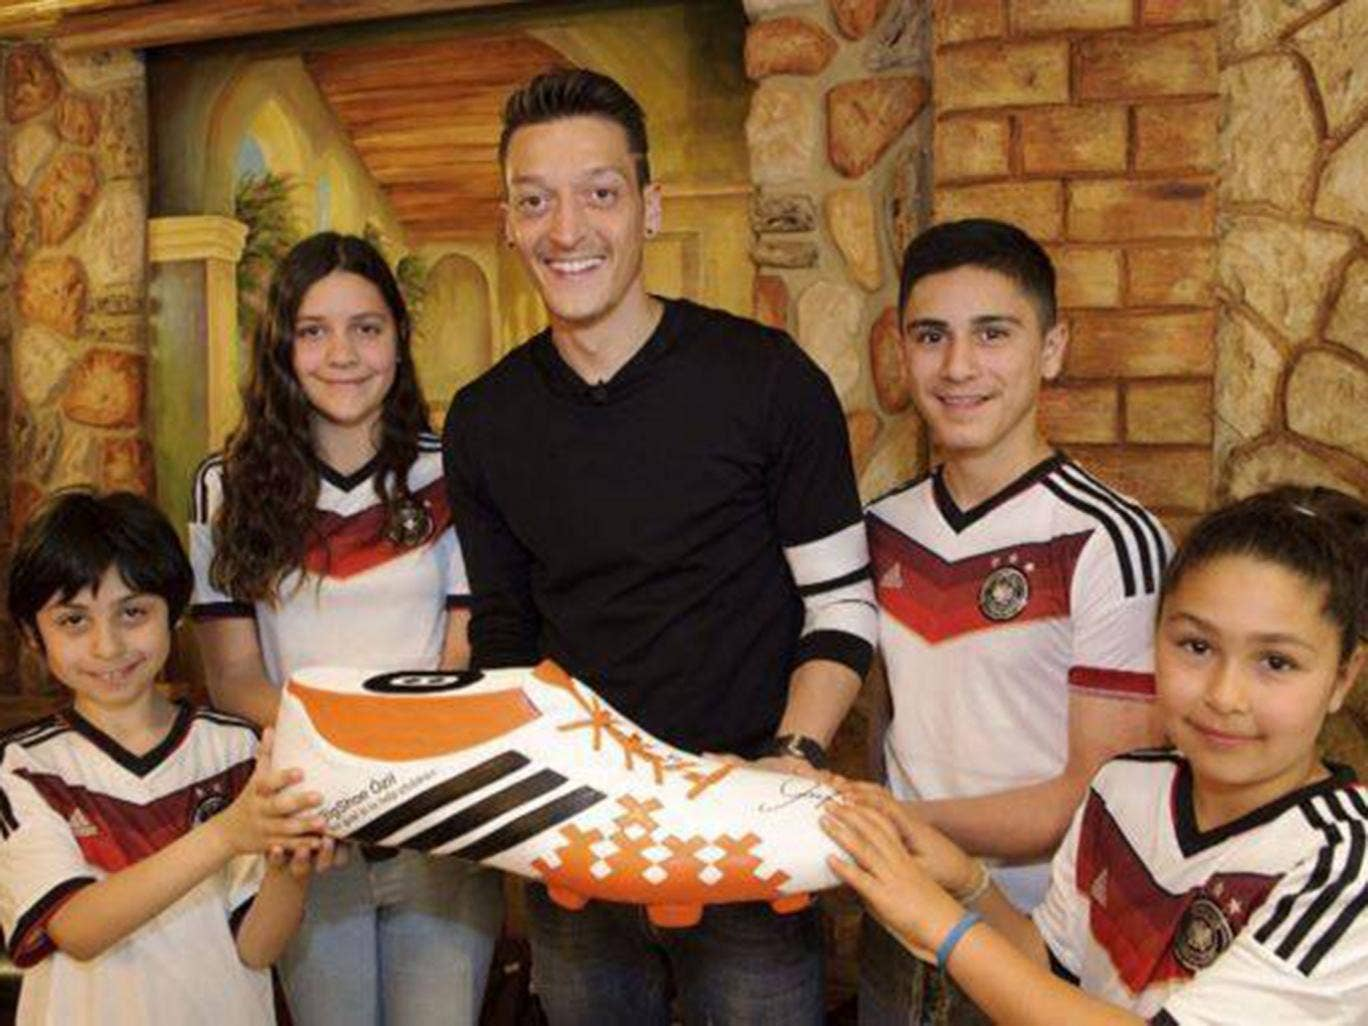 Mesut Özil posted this picture on his Facebook account